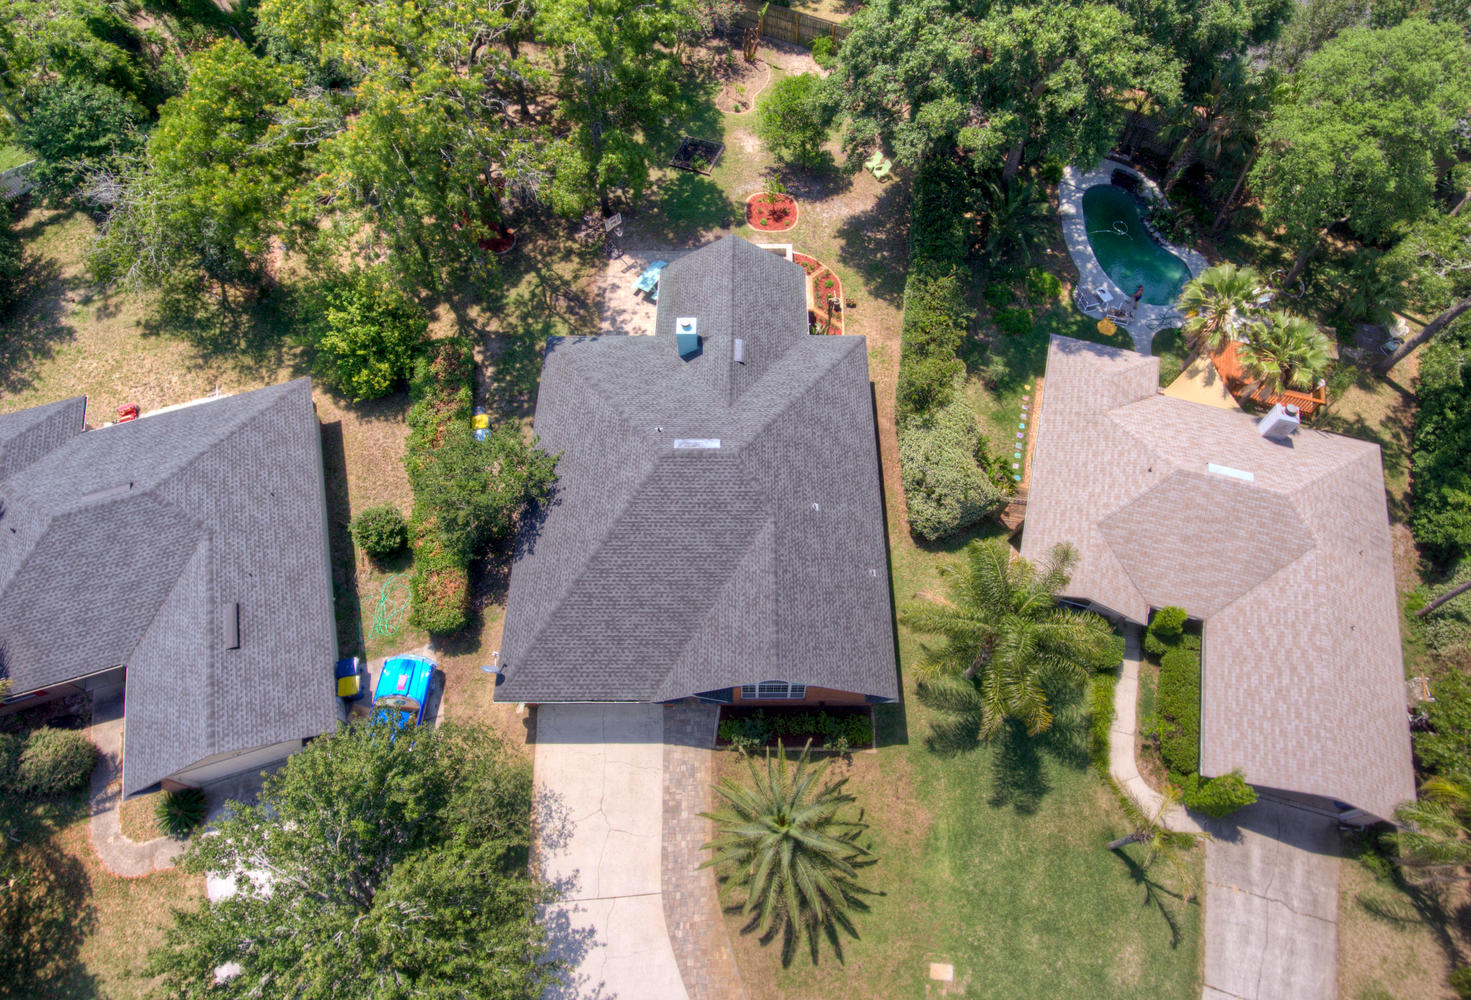 1165 Nesting Eagles Ln-large-001-3-DJI 0006 07 08 09 10-1472x1000-72dpi.jpg